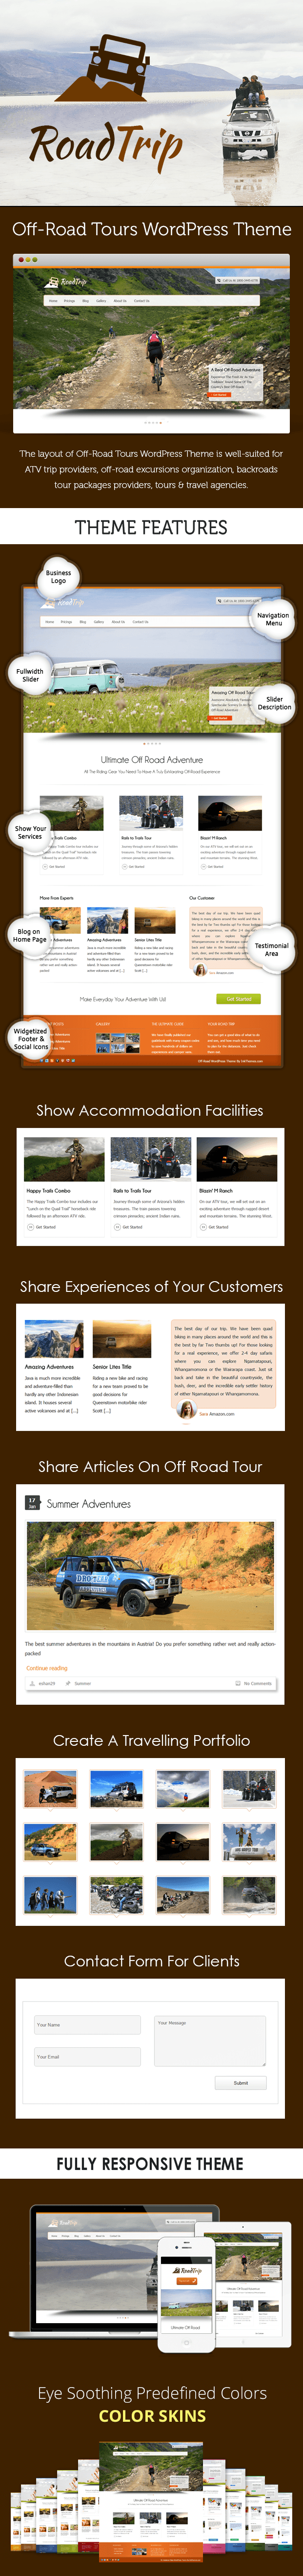 Off-Road Tours WP Theme